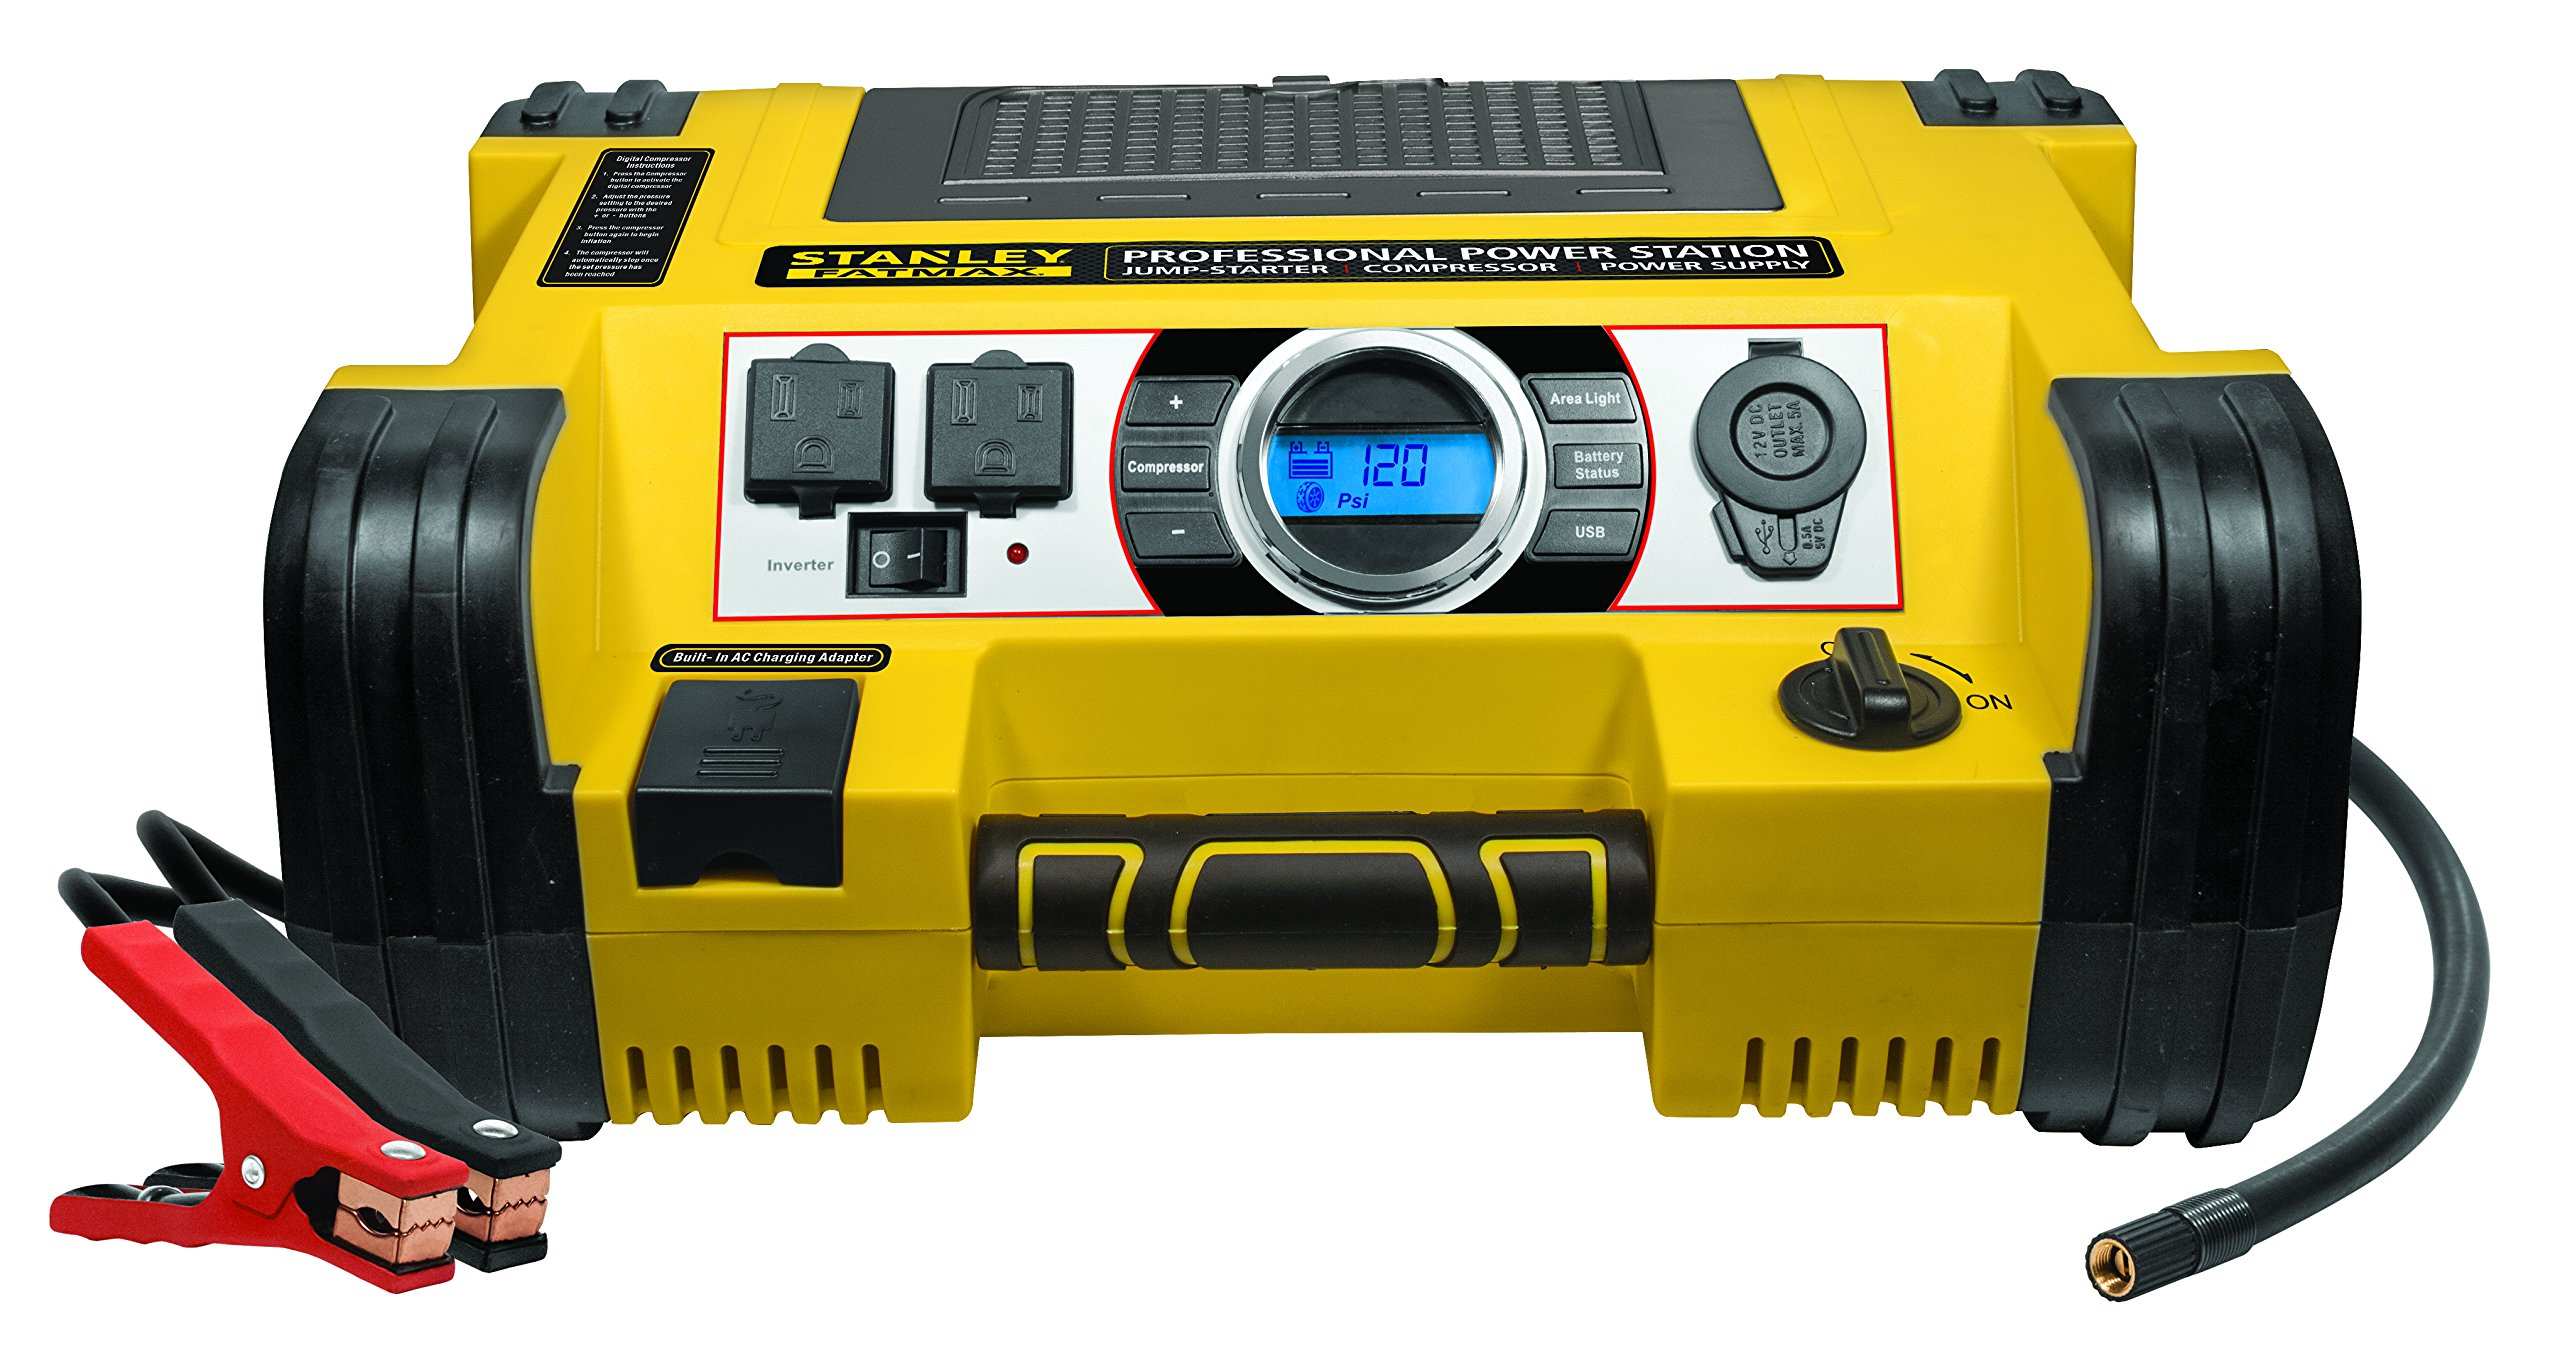 STANLEY FATMAX PPRH7DS Professional Power Station Jump Starter: 1400 Peak/700 Instant Amps, 500W Inverter,